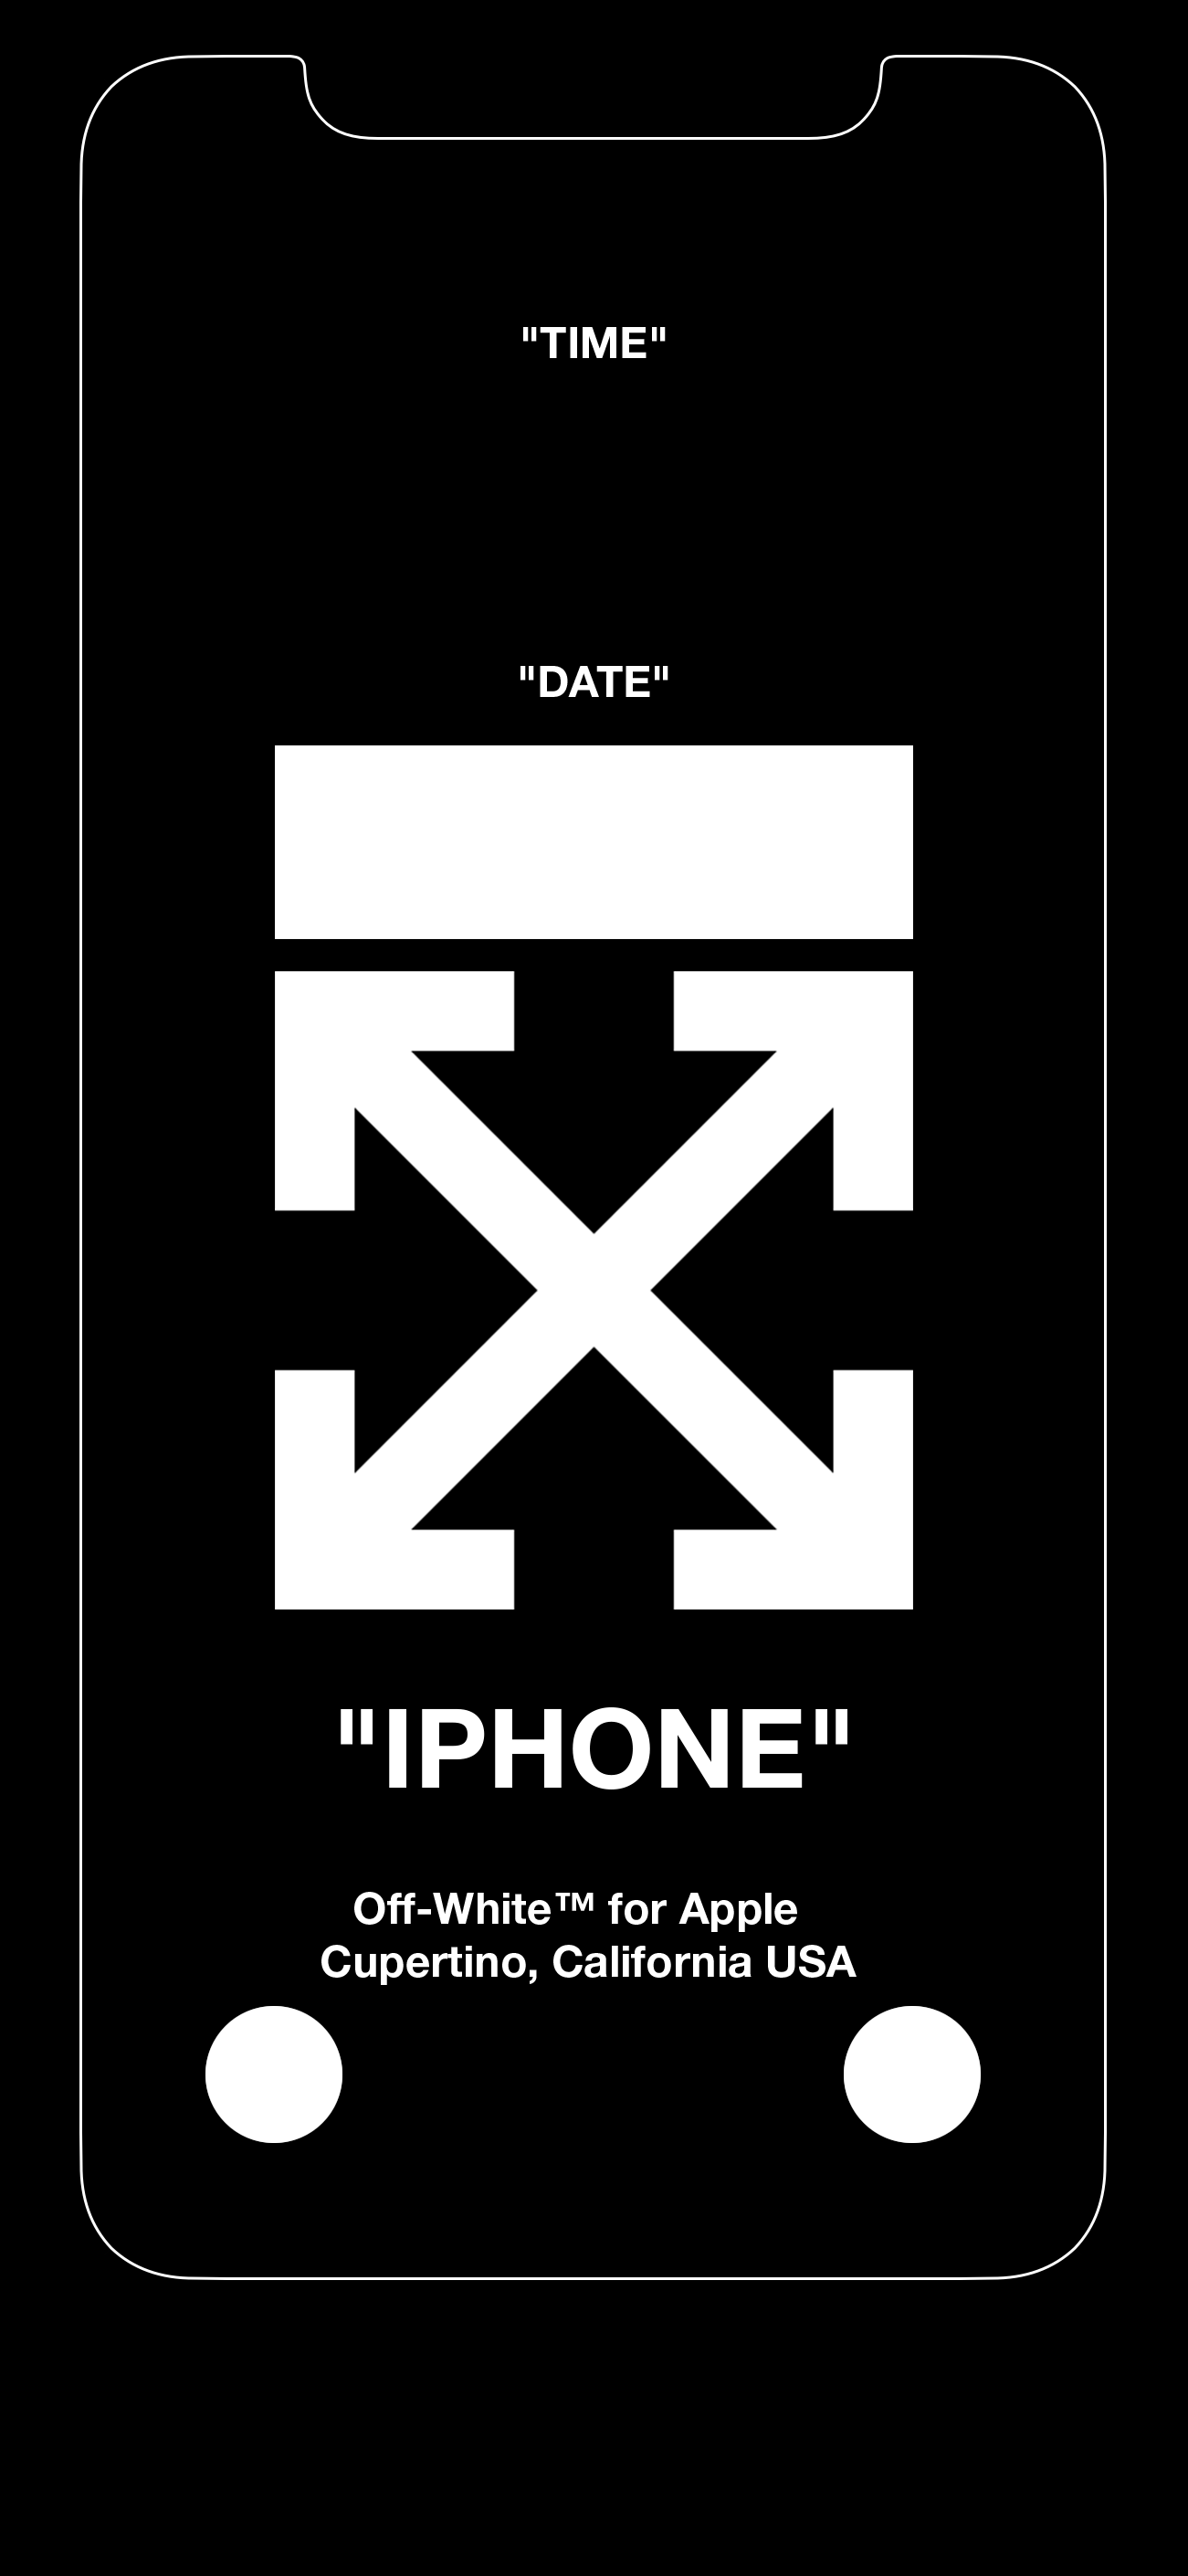 11 Nice Off White Wallpaper Iphone That Have An Looks In 2020 Hypebeast Wallpaper Hypebeast Iphone Wallpaper White Wallpaper For Iphone